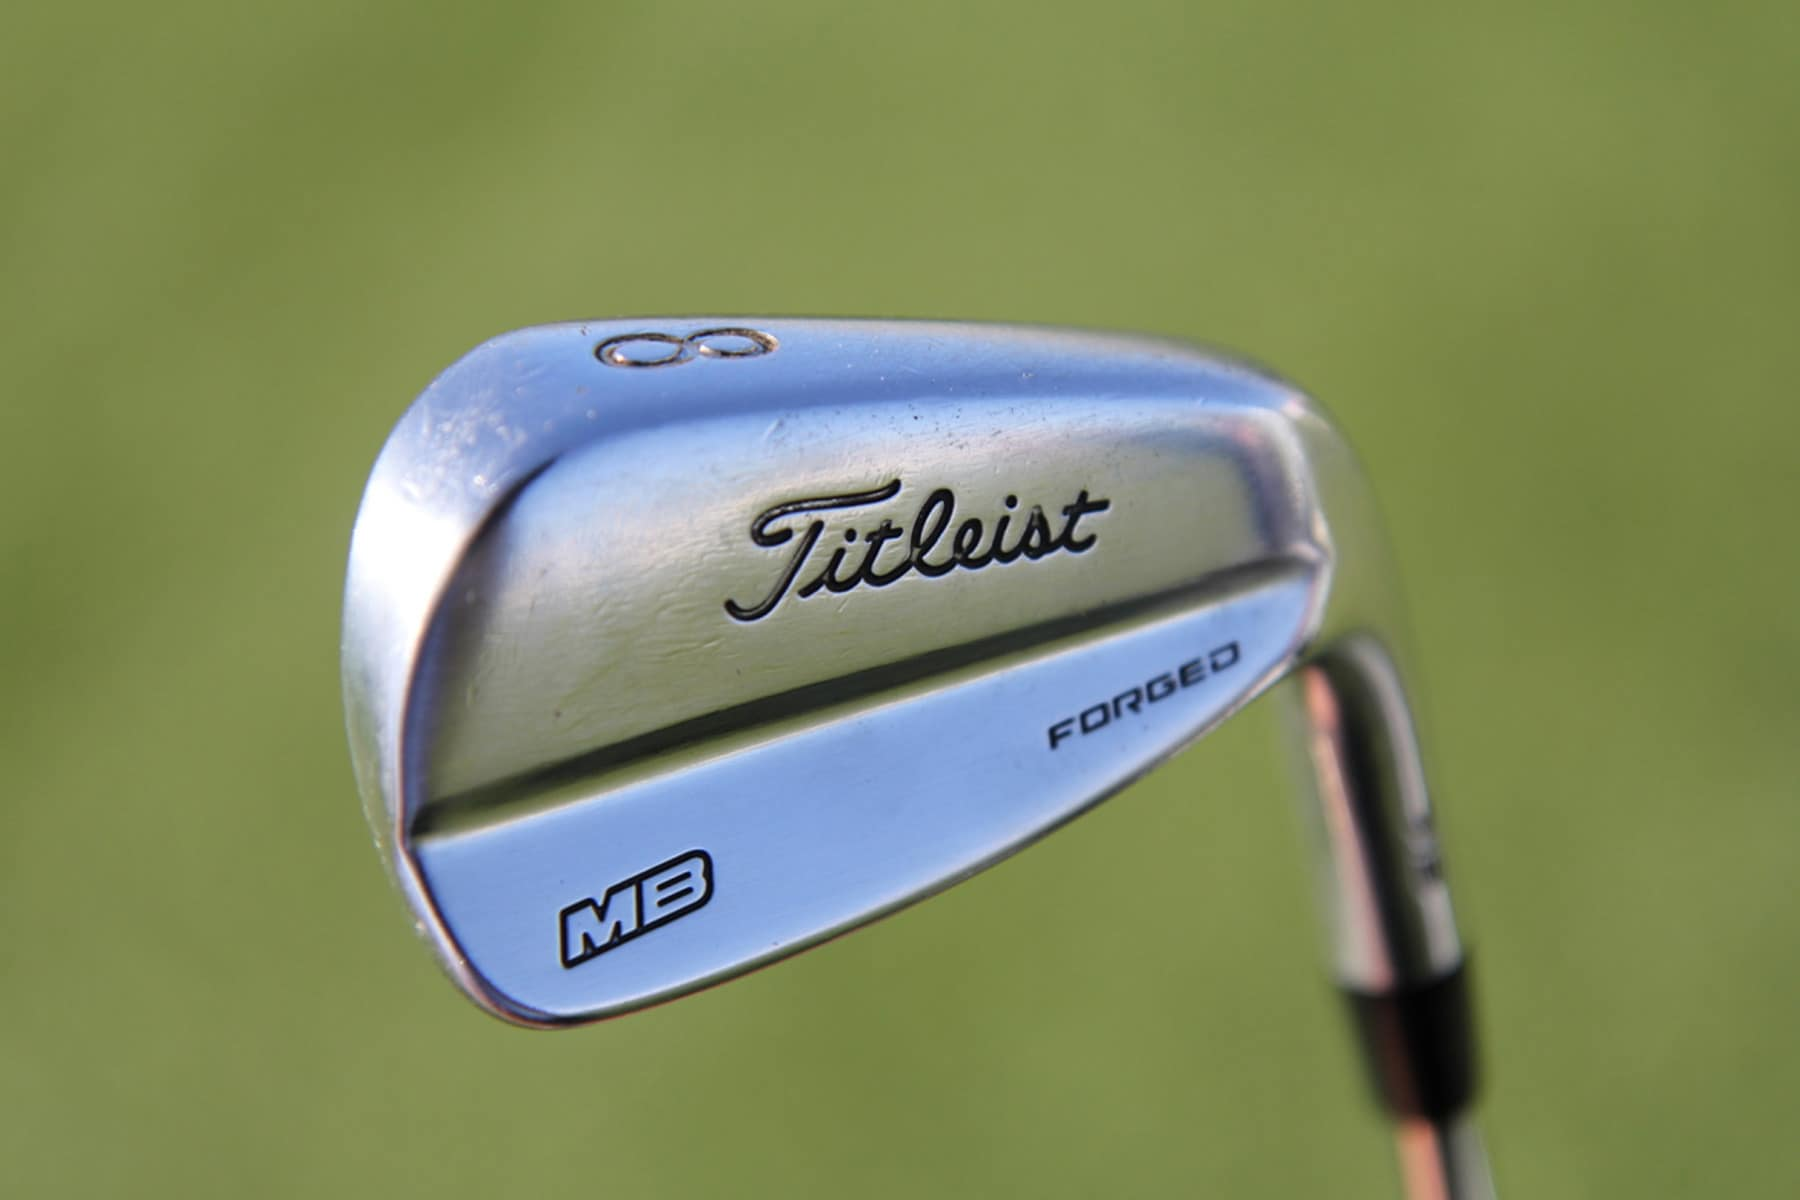 Justin carries 718 MB (5-9) irons for maximum feel...